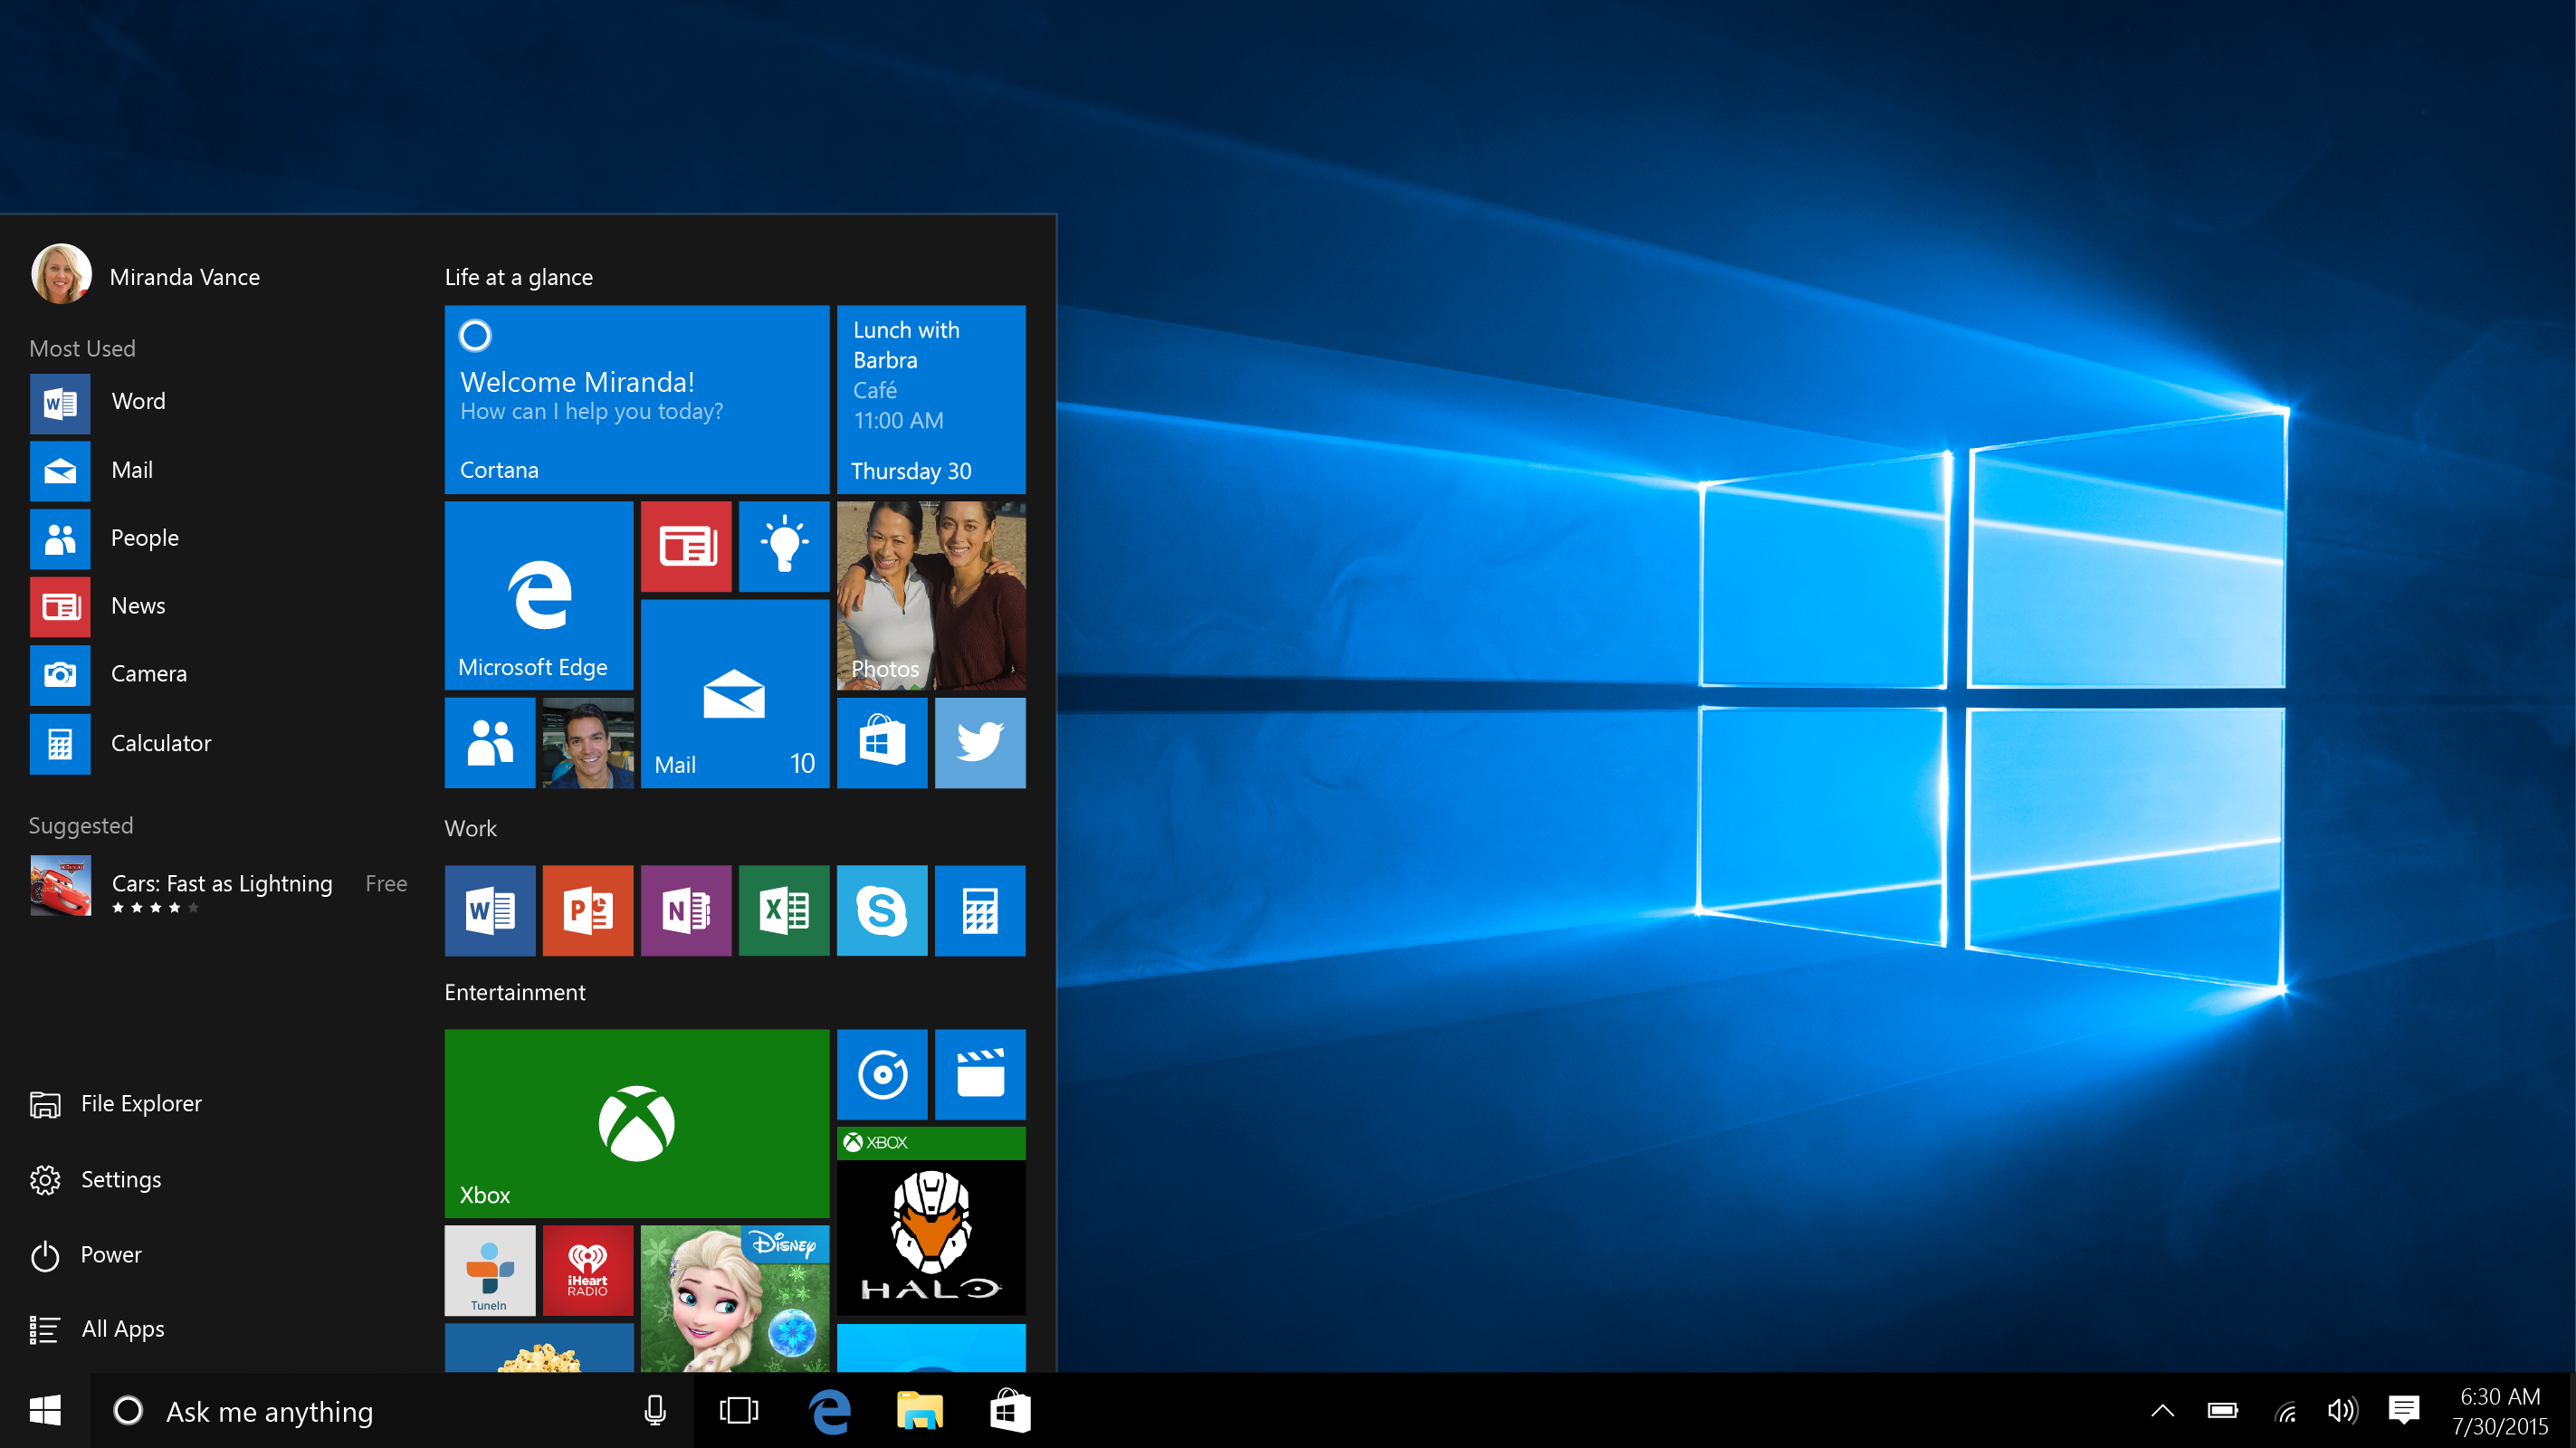 Windows 10 which released on July 29, 2015, blends the familiar layout of Windows 7 with touch features from Windows 8. The Start menu makes a grand reentrance, with Live Tiles discreetly tucked inside. Cortana, Microsoft's speech-activated assistant for smartphones, will also debut across all devices.